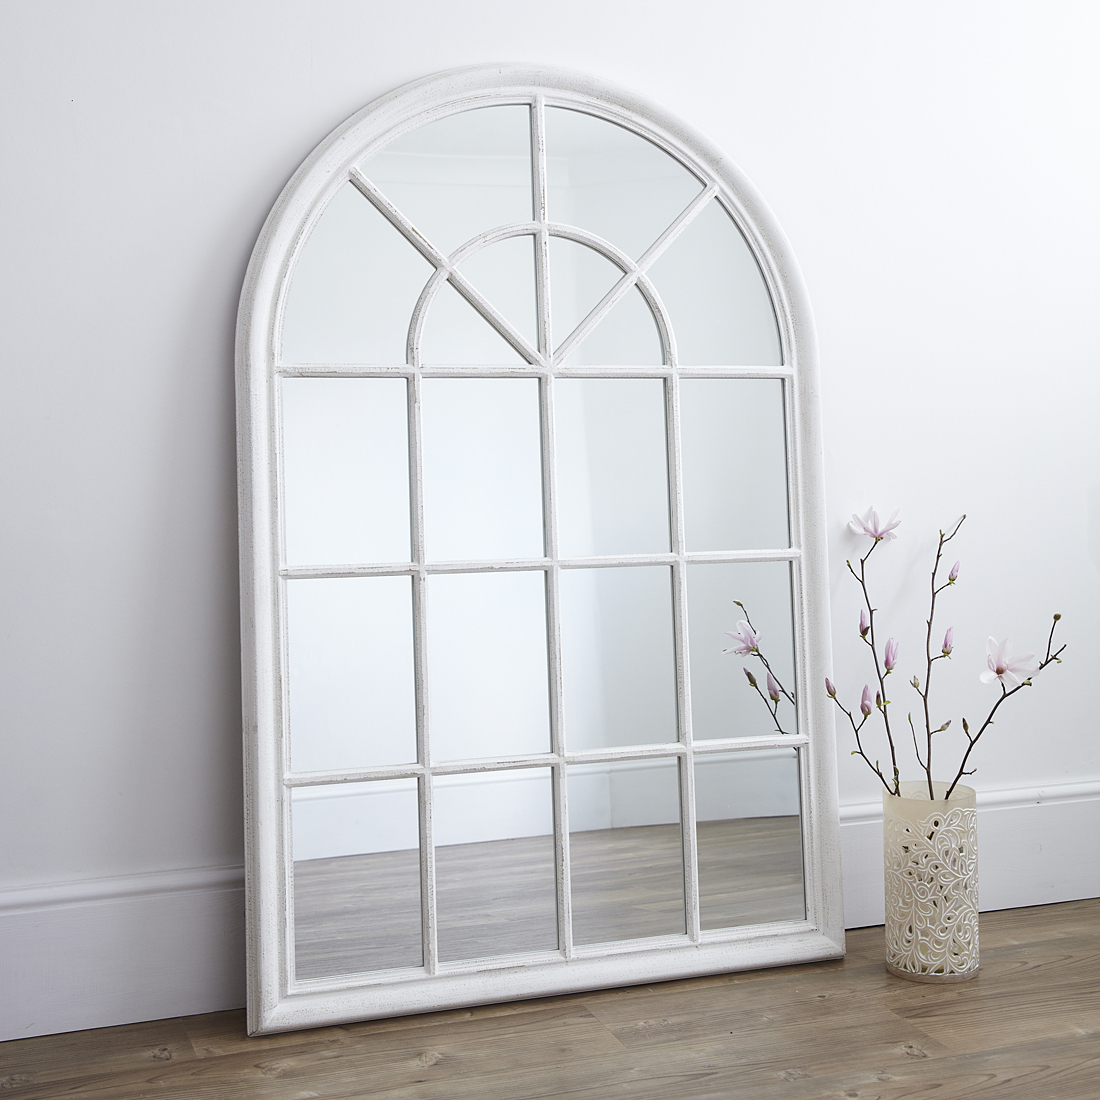 Preferred White Arched Window Wall Mirror With Regard To Distressed White Wall Mirrors (Gallery 12 of 20)